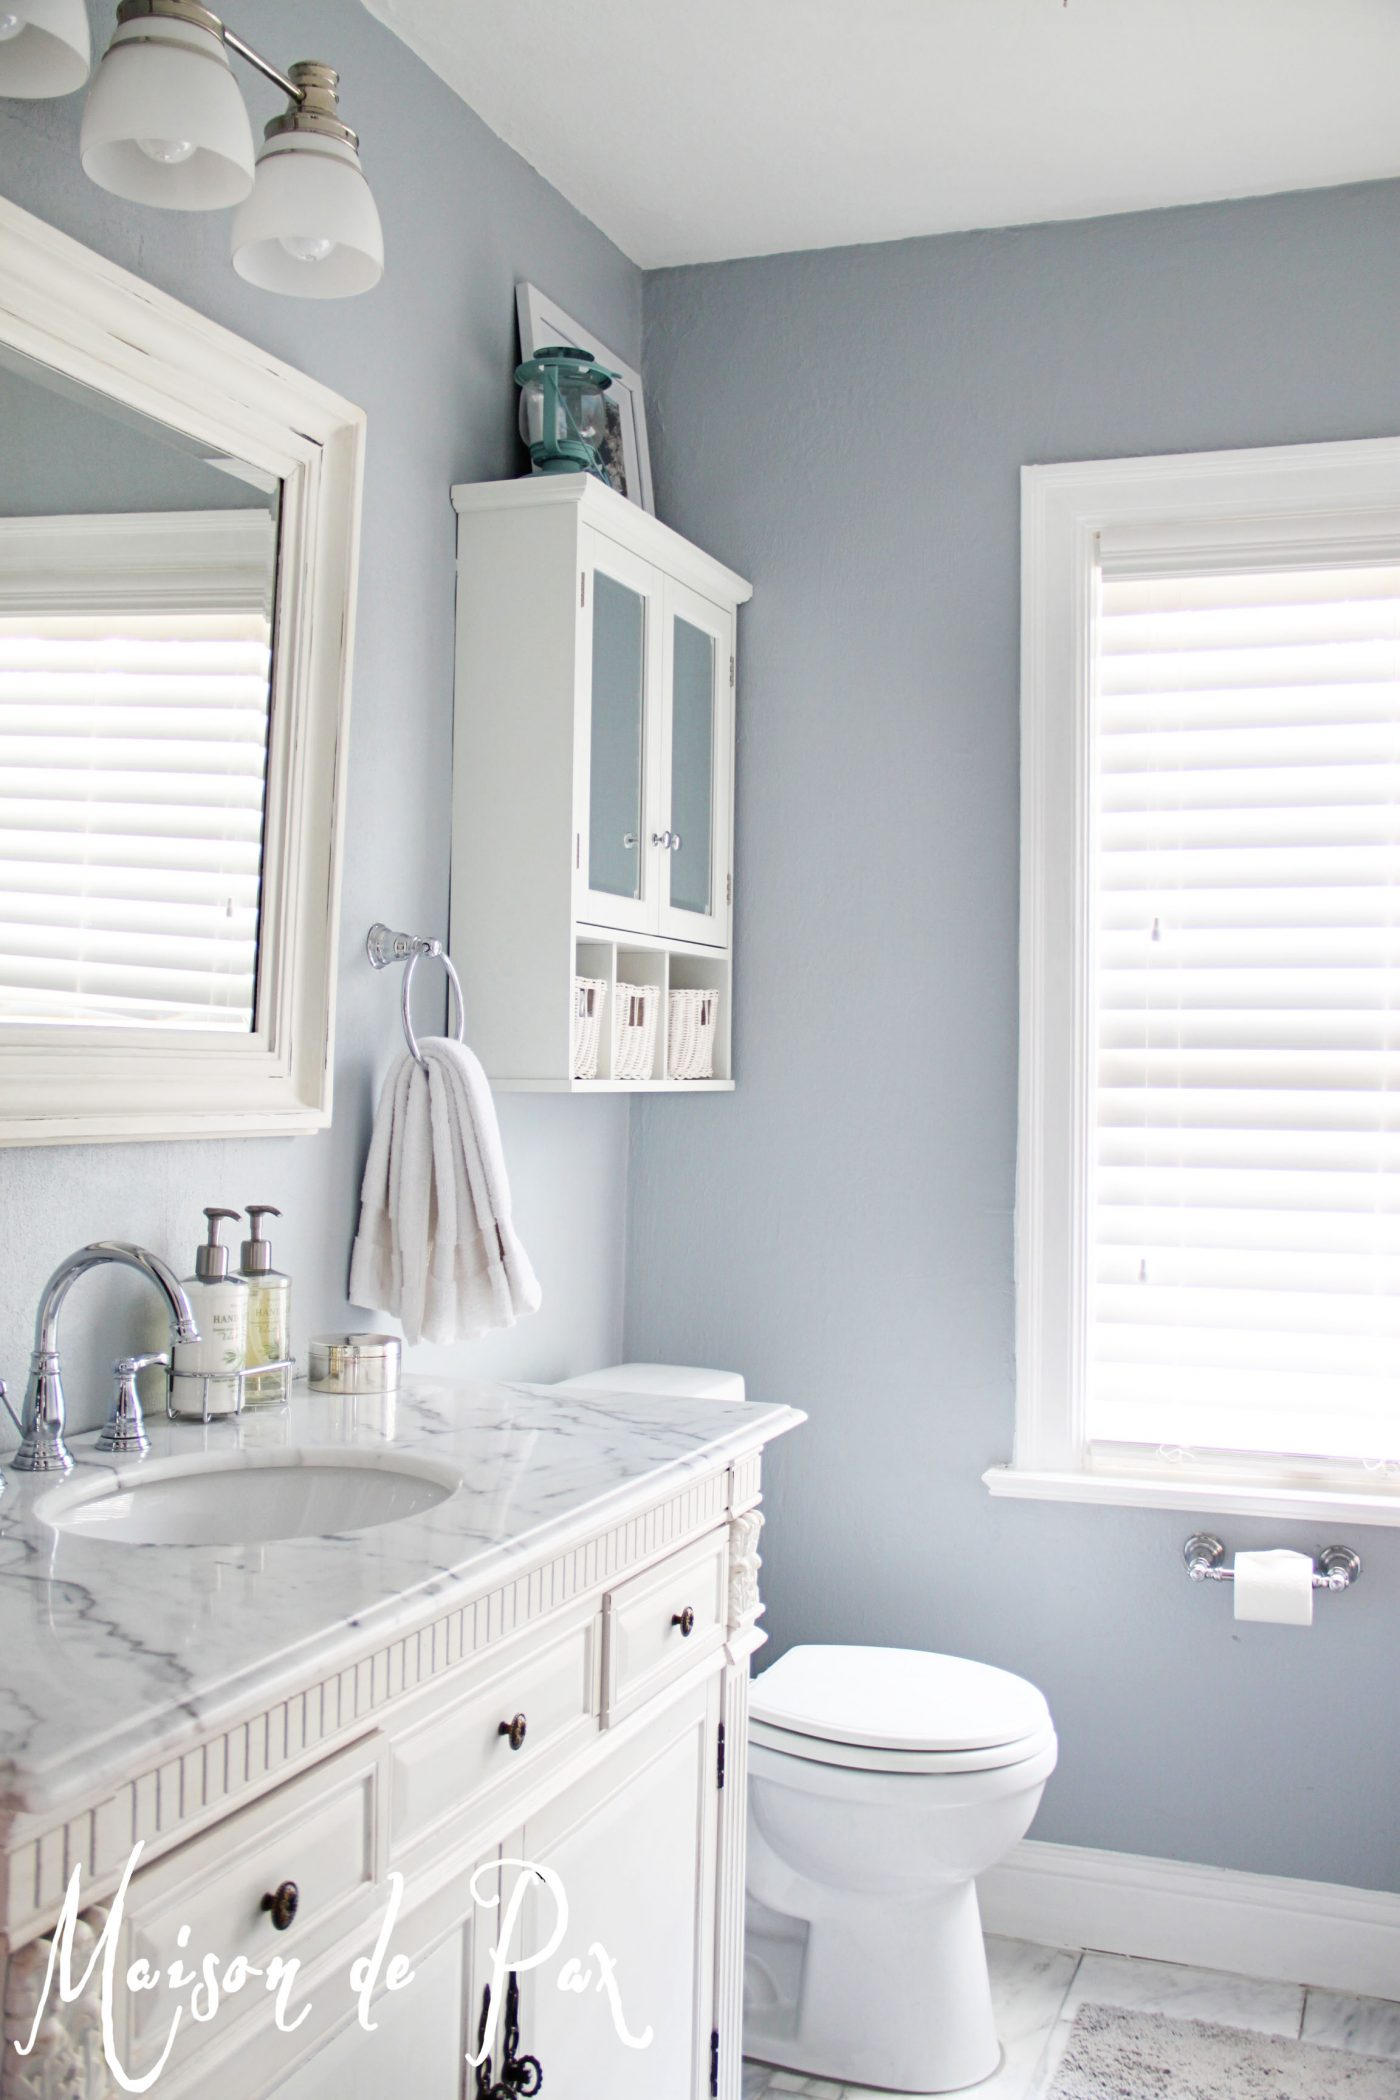 How to design a small bathroom for Sherwin williams bathroom paint colors